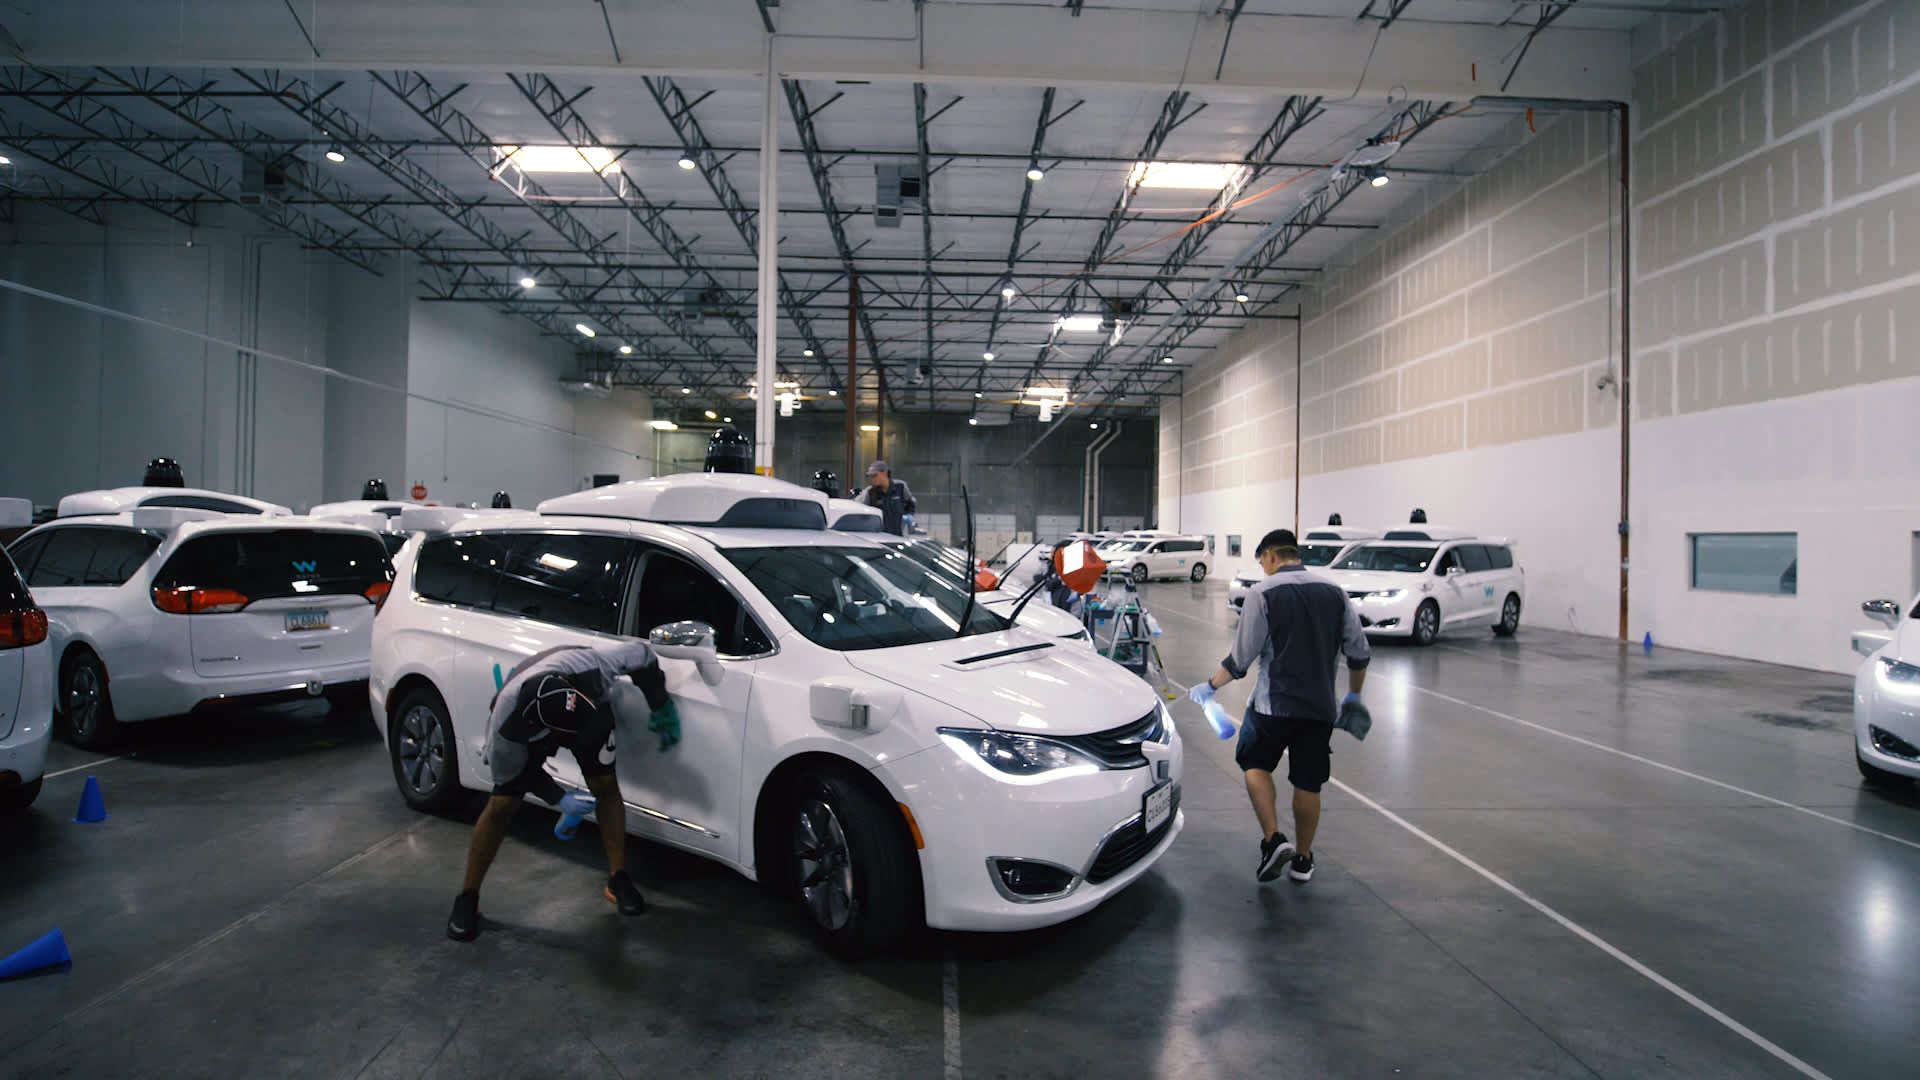 Waymo's Austin closure was sudden and affected about 100 contractors, workers say